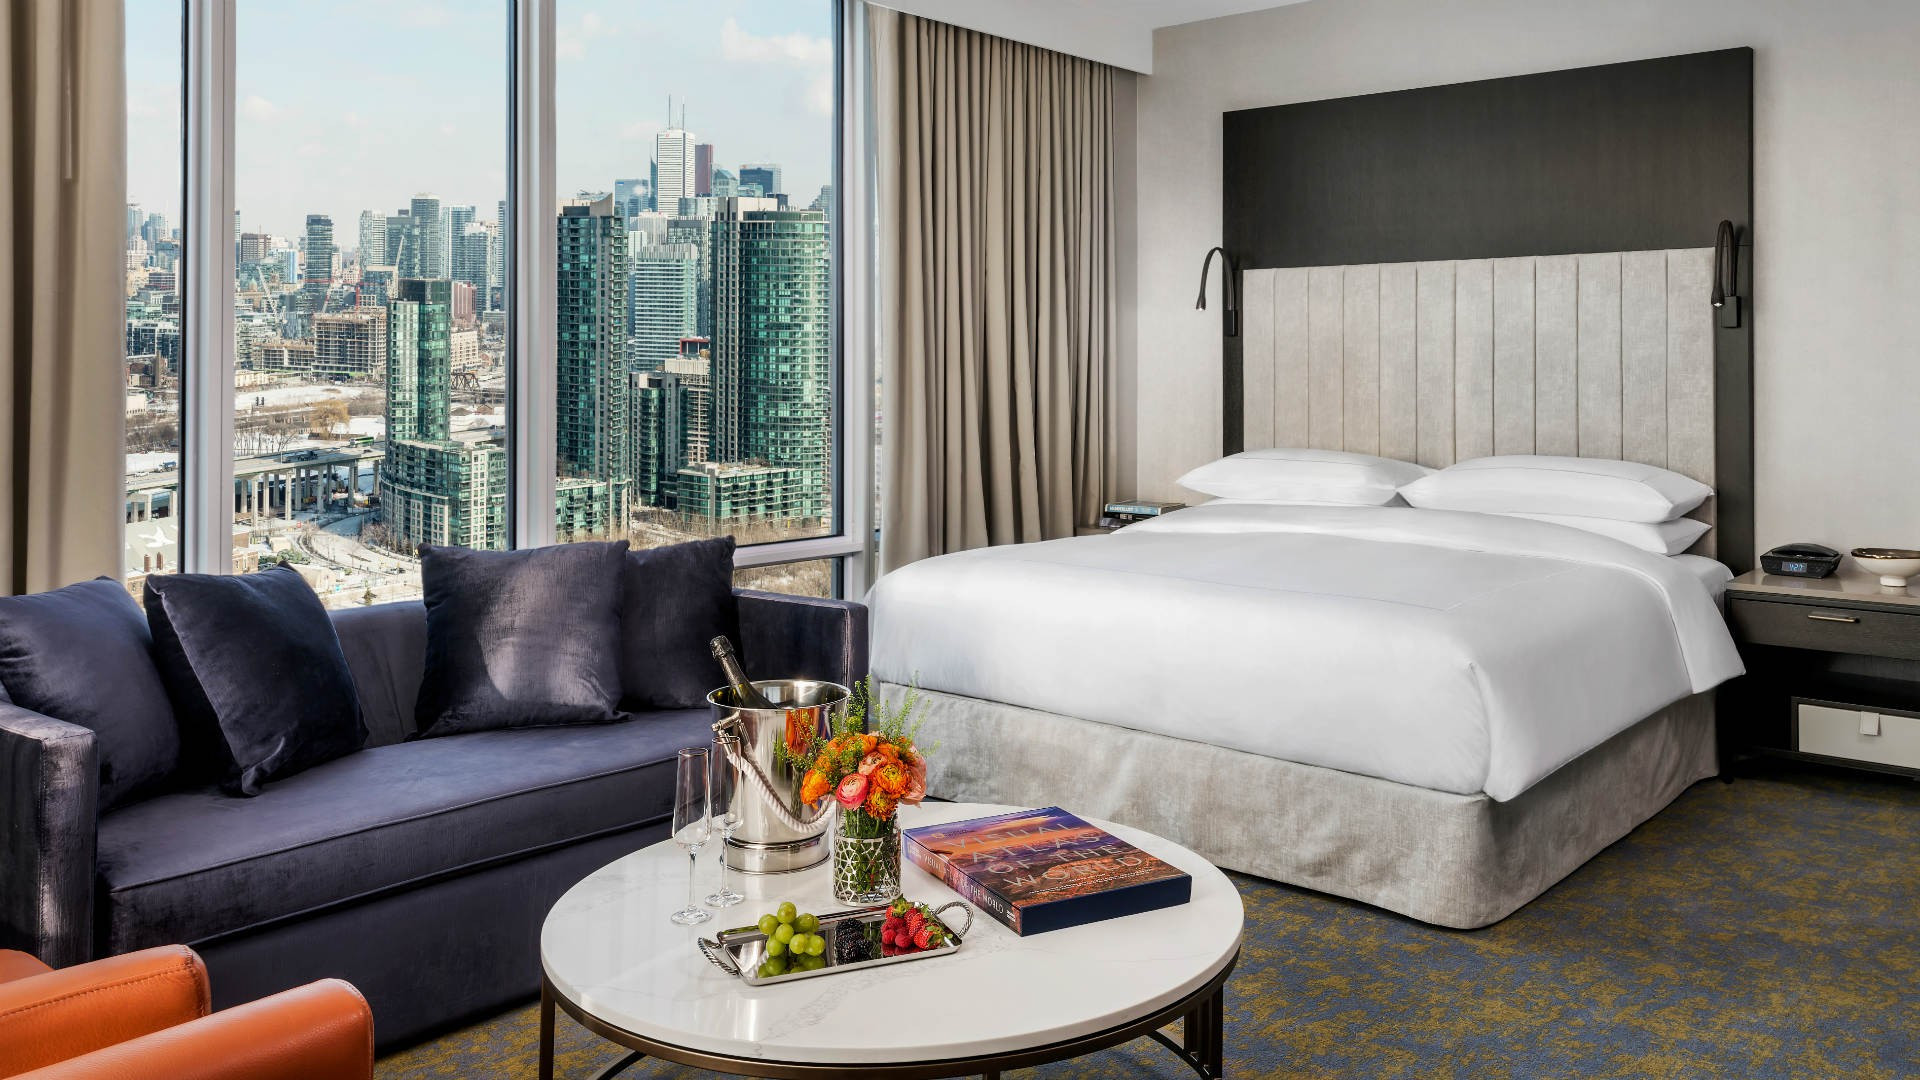 Hotel X Toronto staycation | Suite overlooking the city